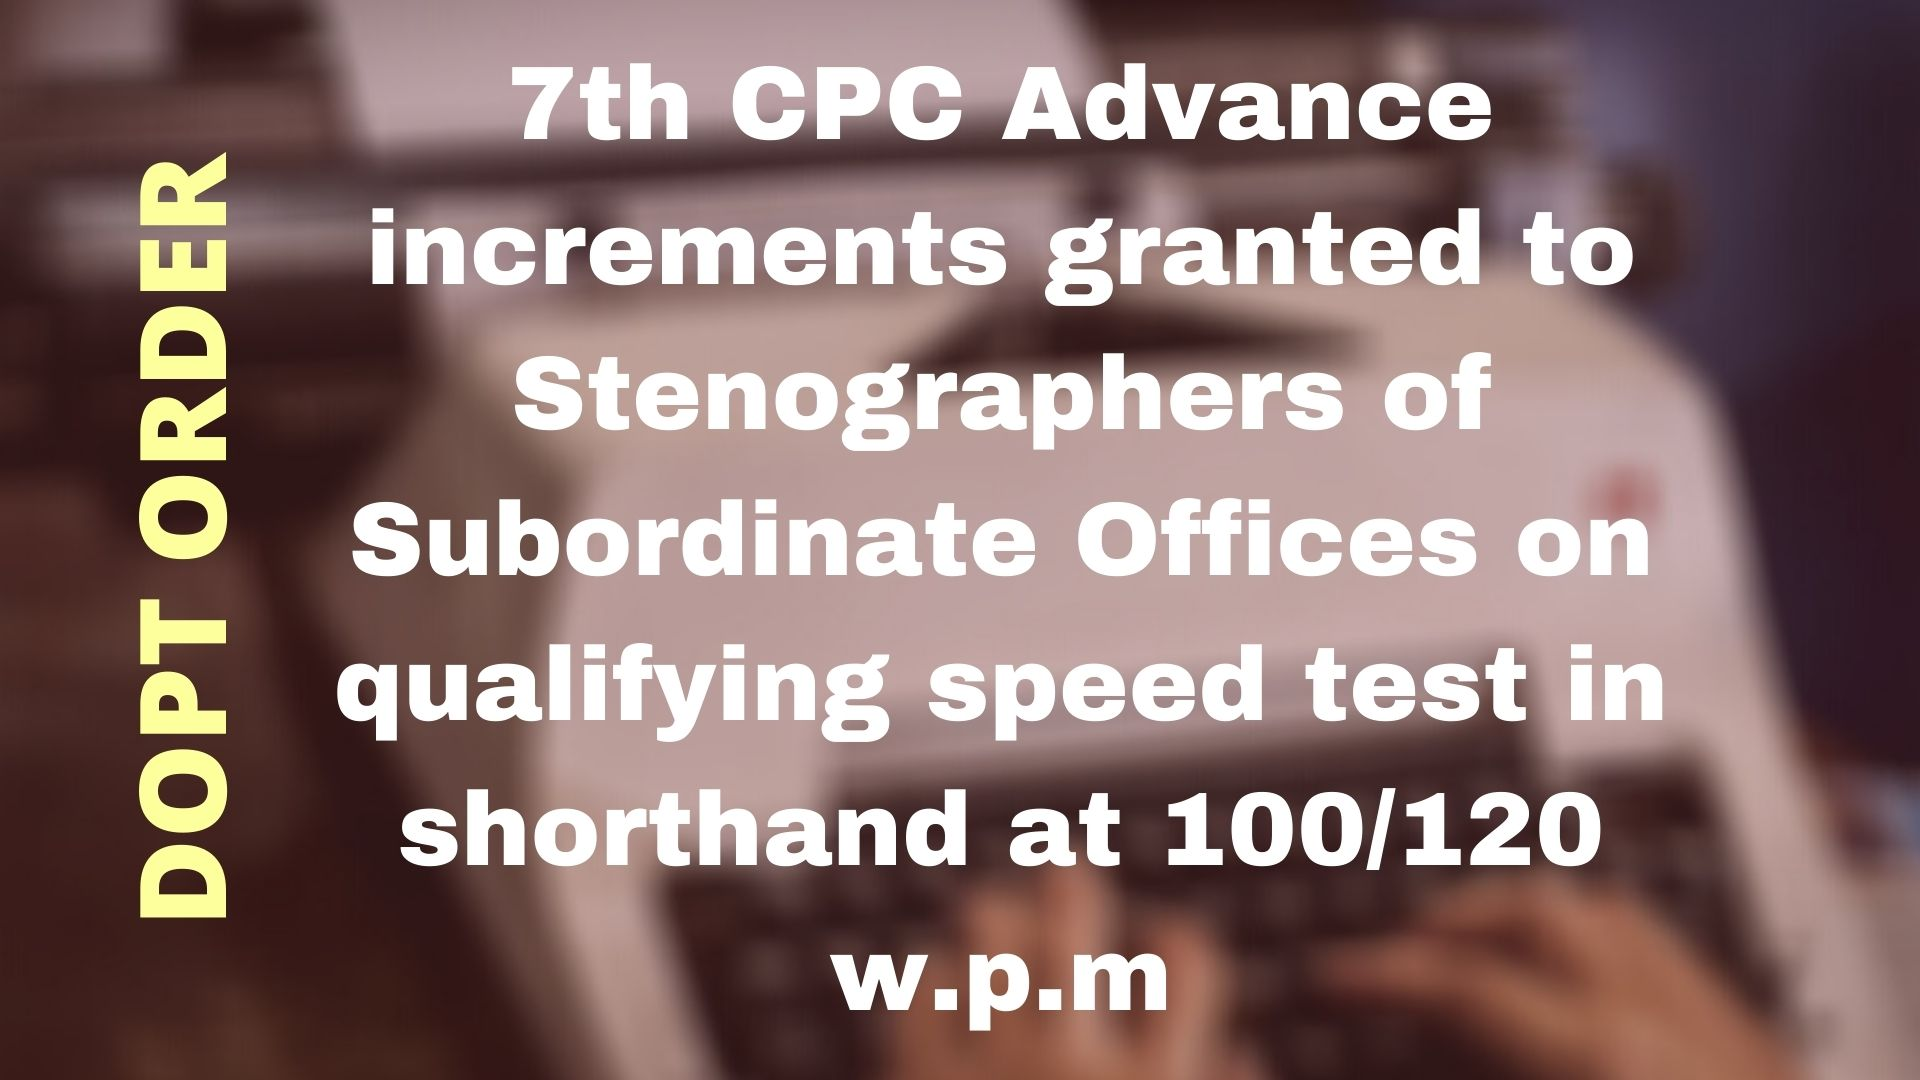 7th CPC Advance increments granted to Stenographers